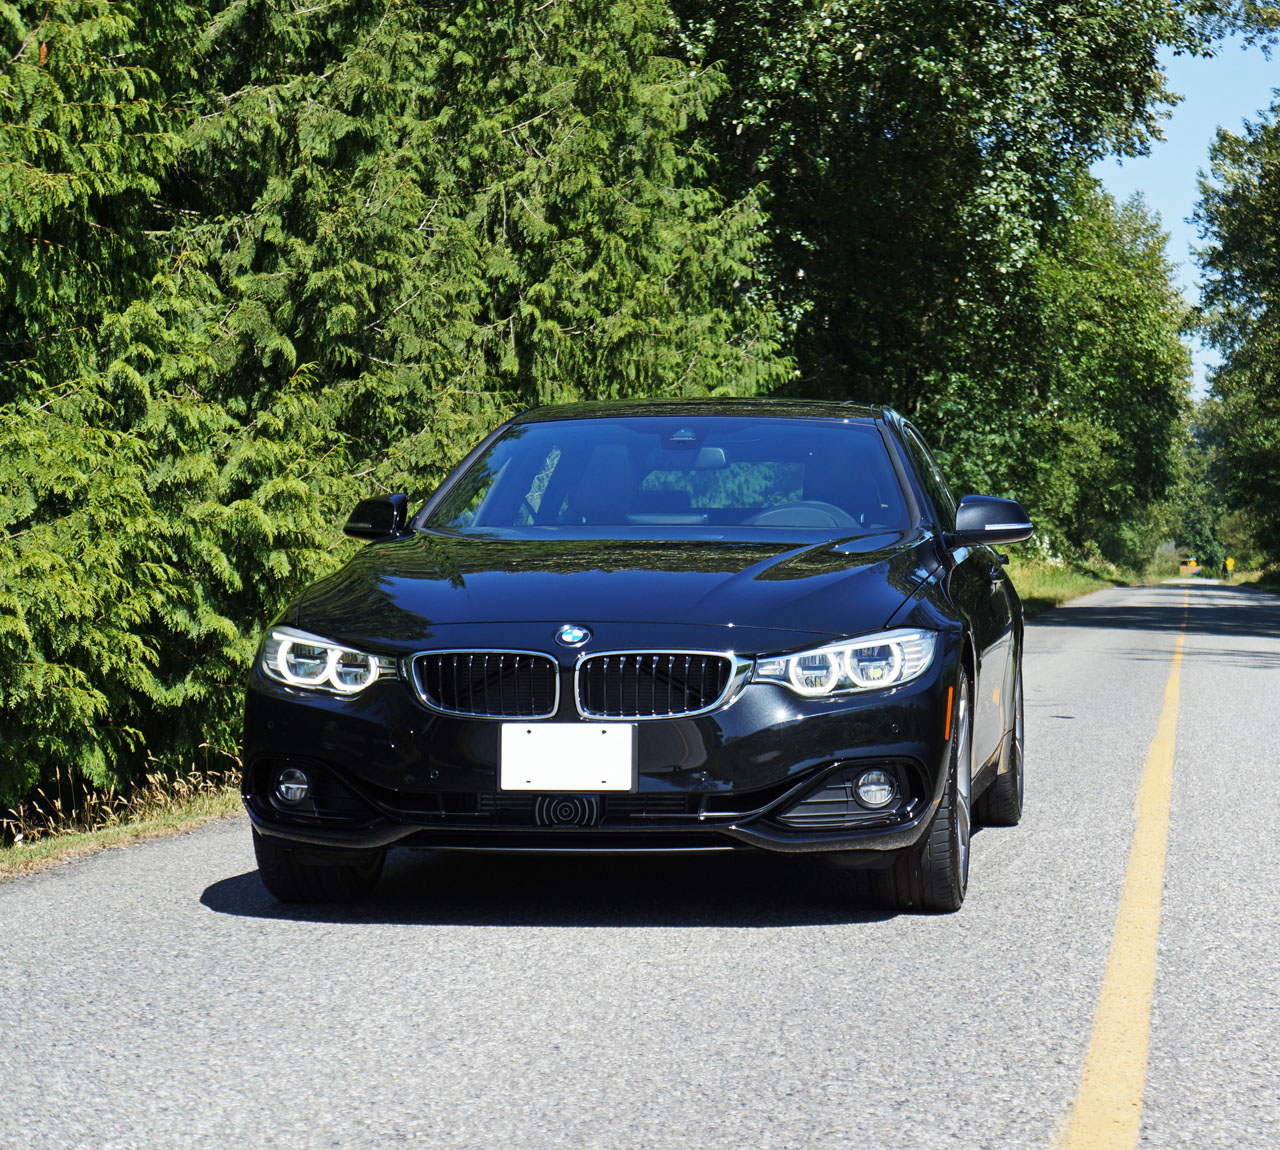 Bmw Xdrive System Review: 2015 BMW 428i XDrive Gran Coupe Road Test Review